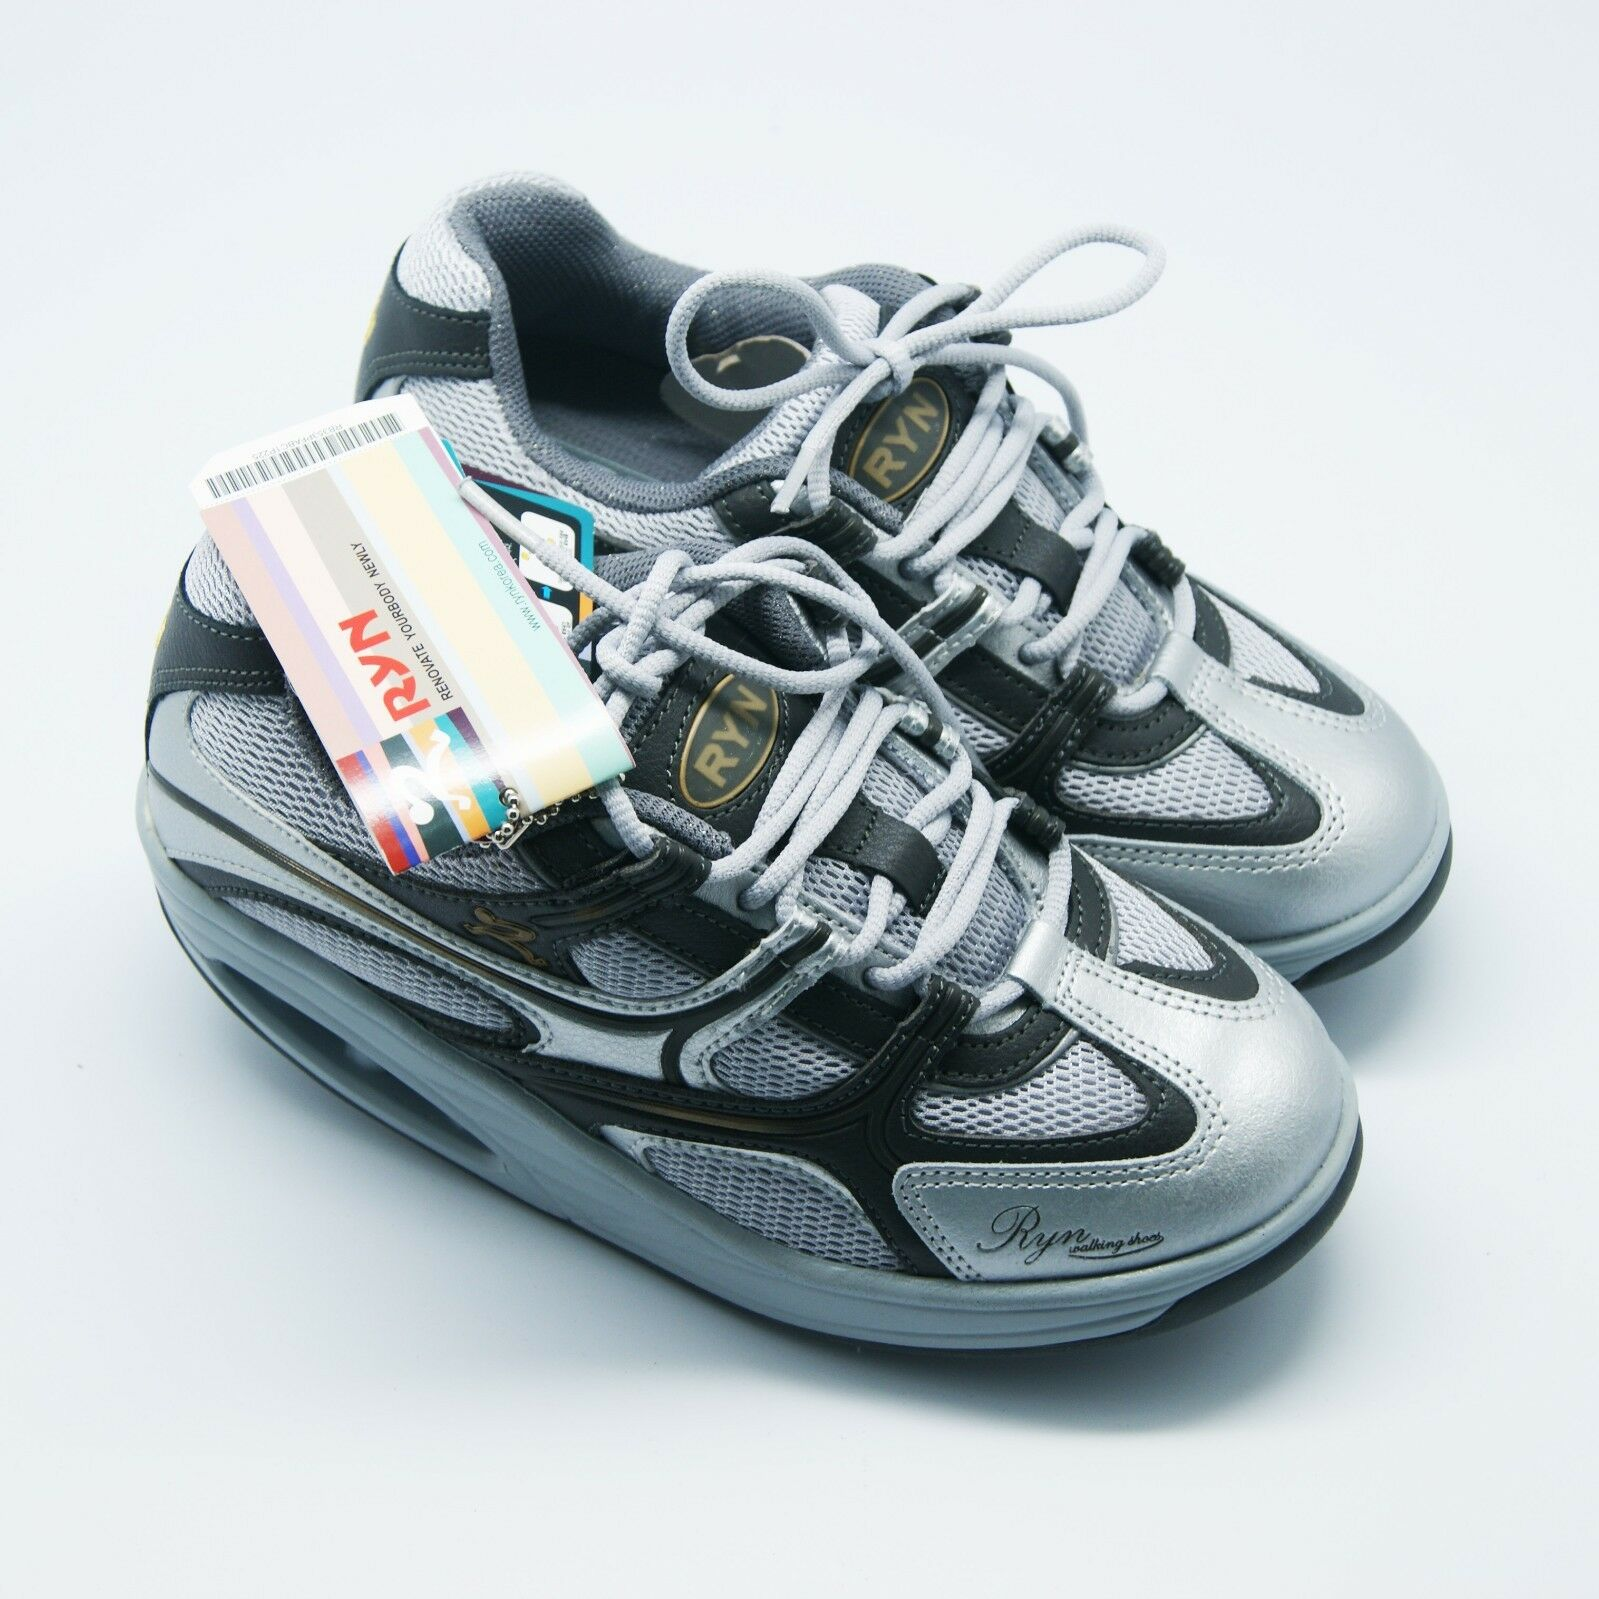 Ryn Womens Massai Walking shoes Sneakers Citrin Silver Silver Silver SIZE 5.5 (For Sale) bb1dfc